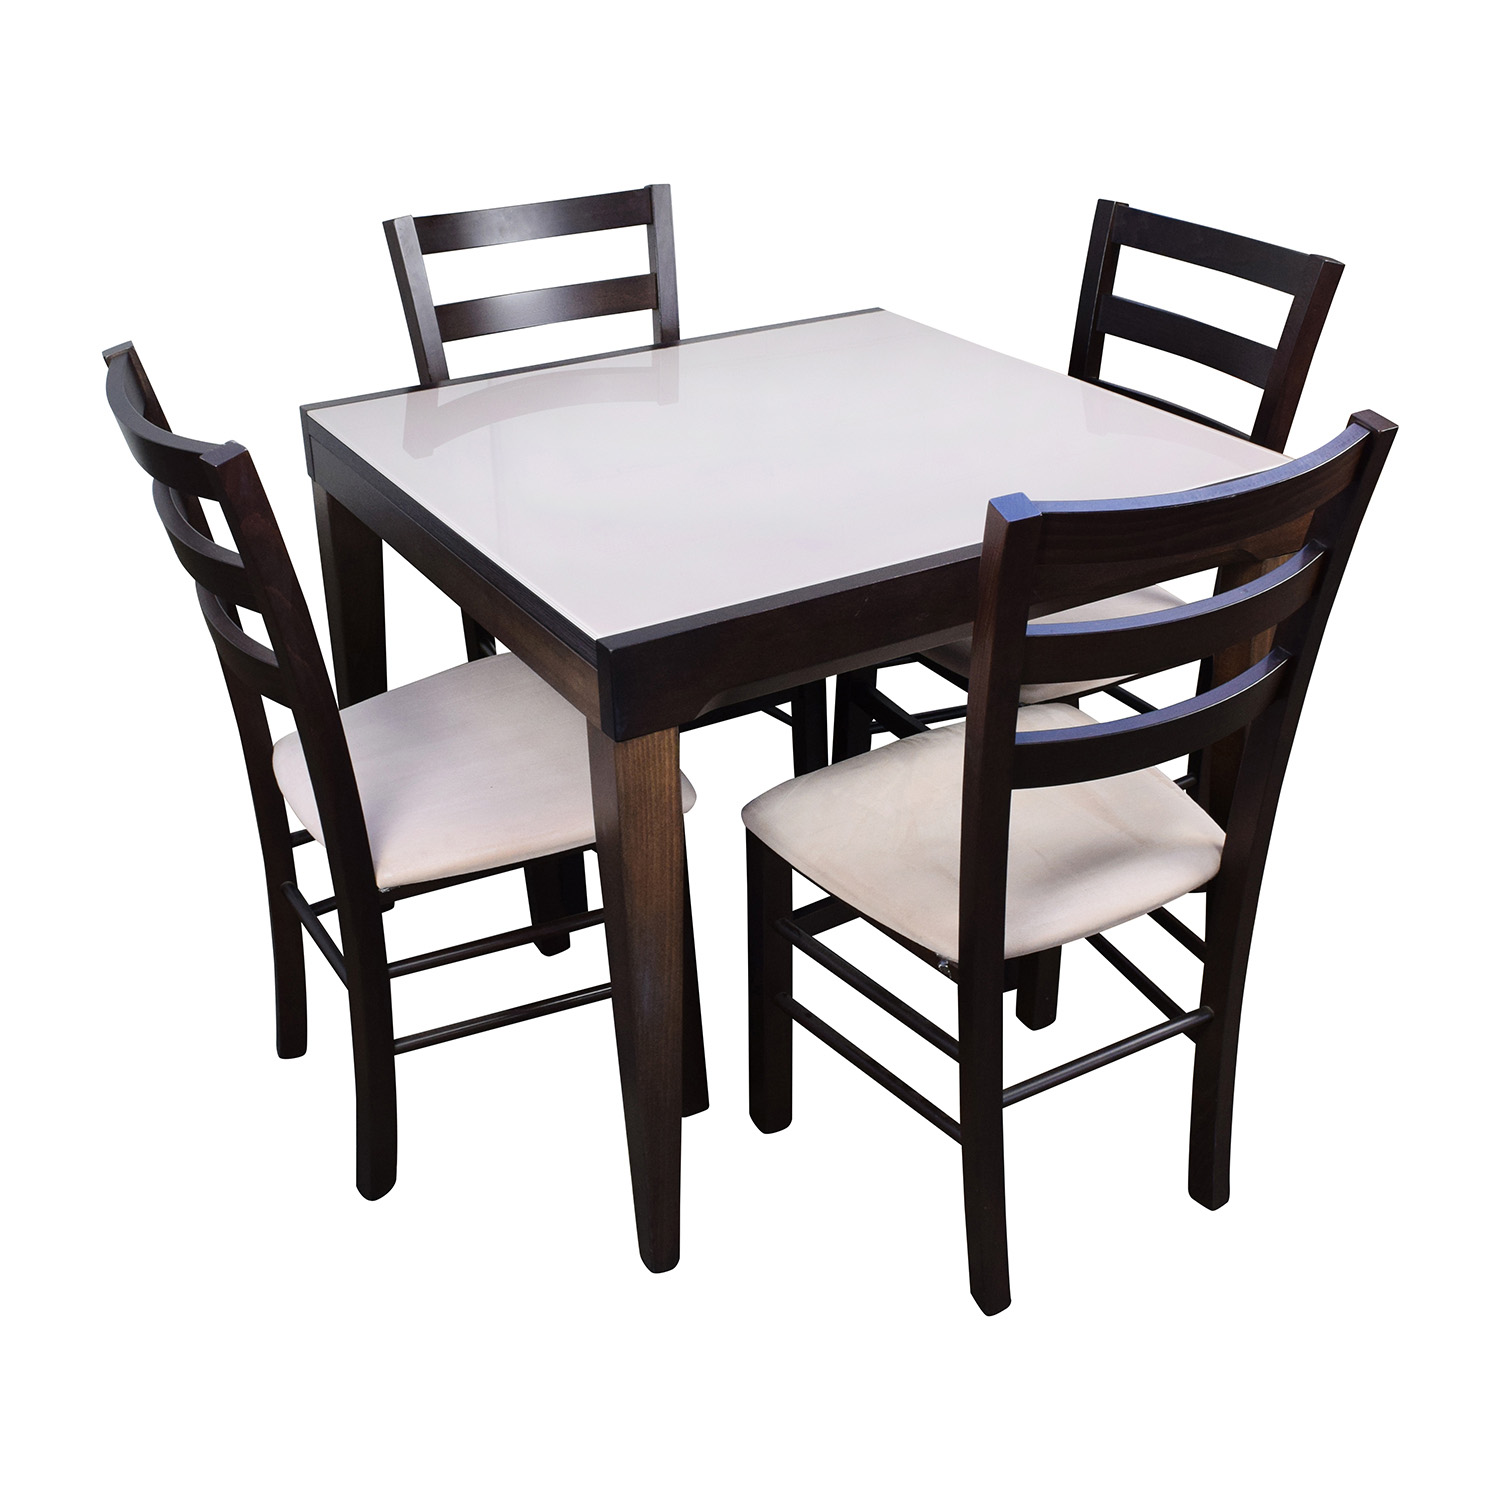 Macys Cafe Latte Five Piece Extendable Dining Set Price